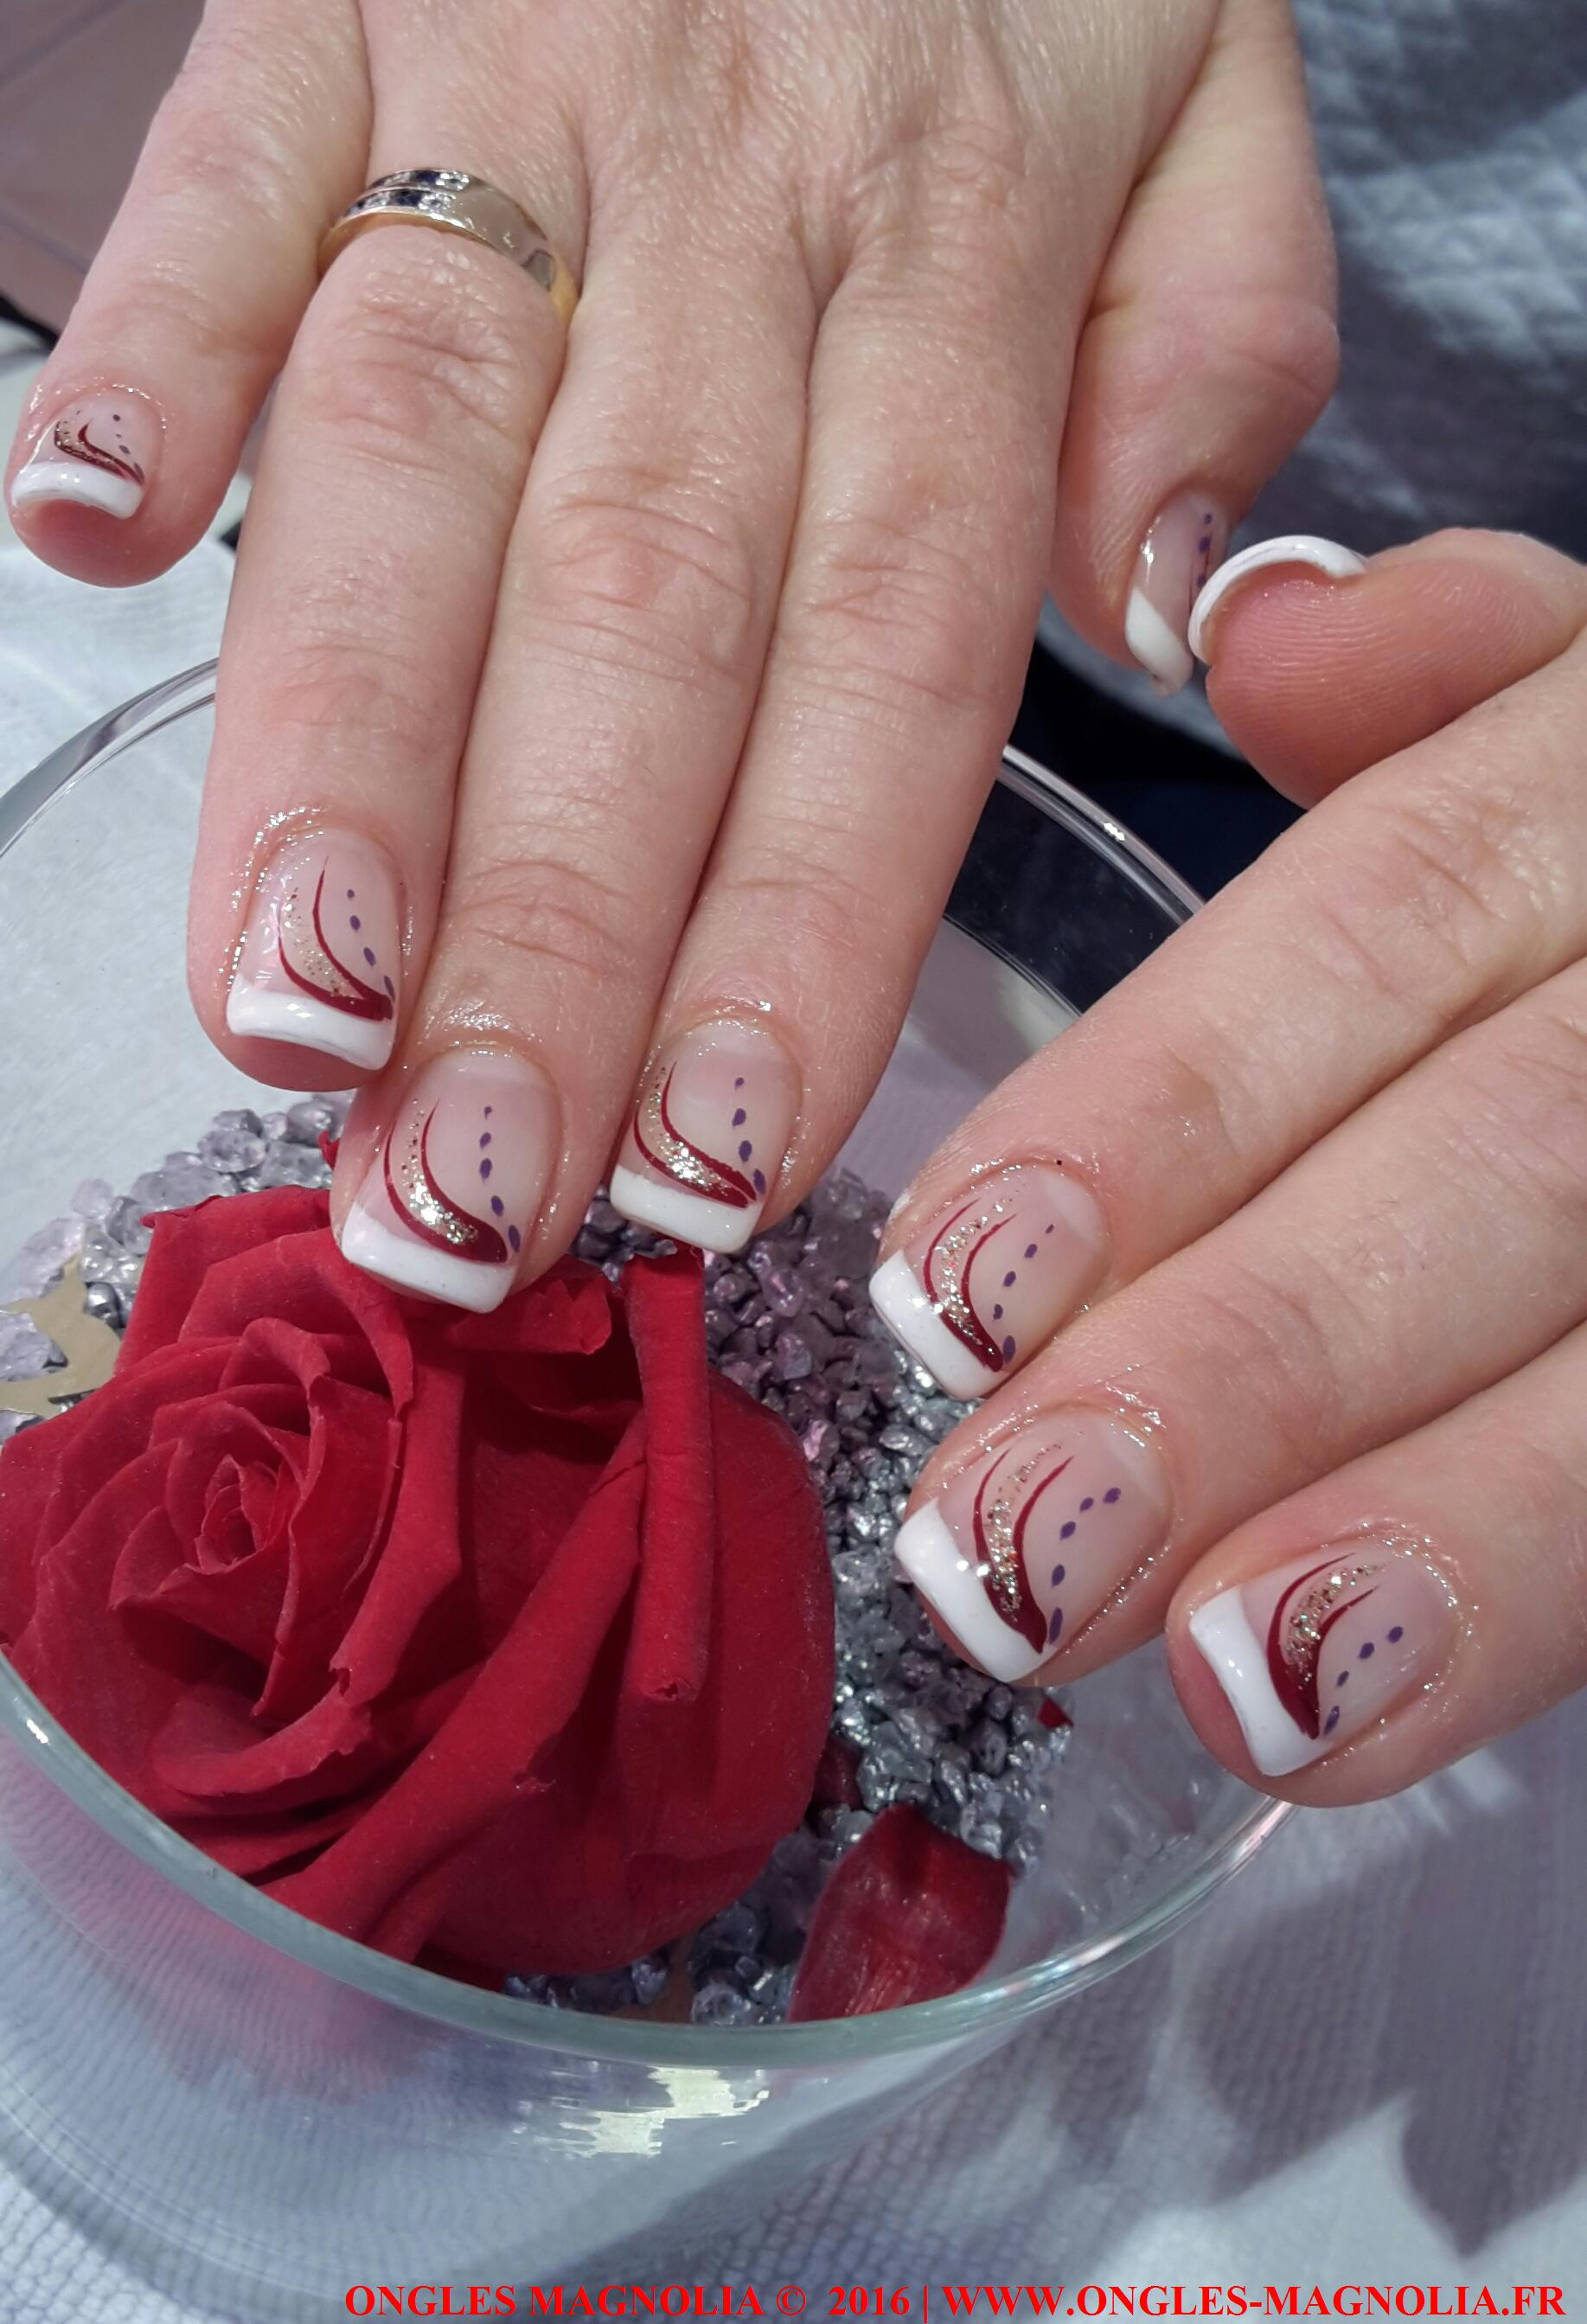 Pose-ongles-nail-art-neuville-sur-saone-lyon-ongles magnolia 202016